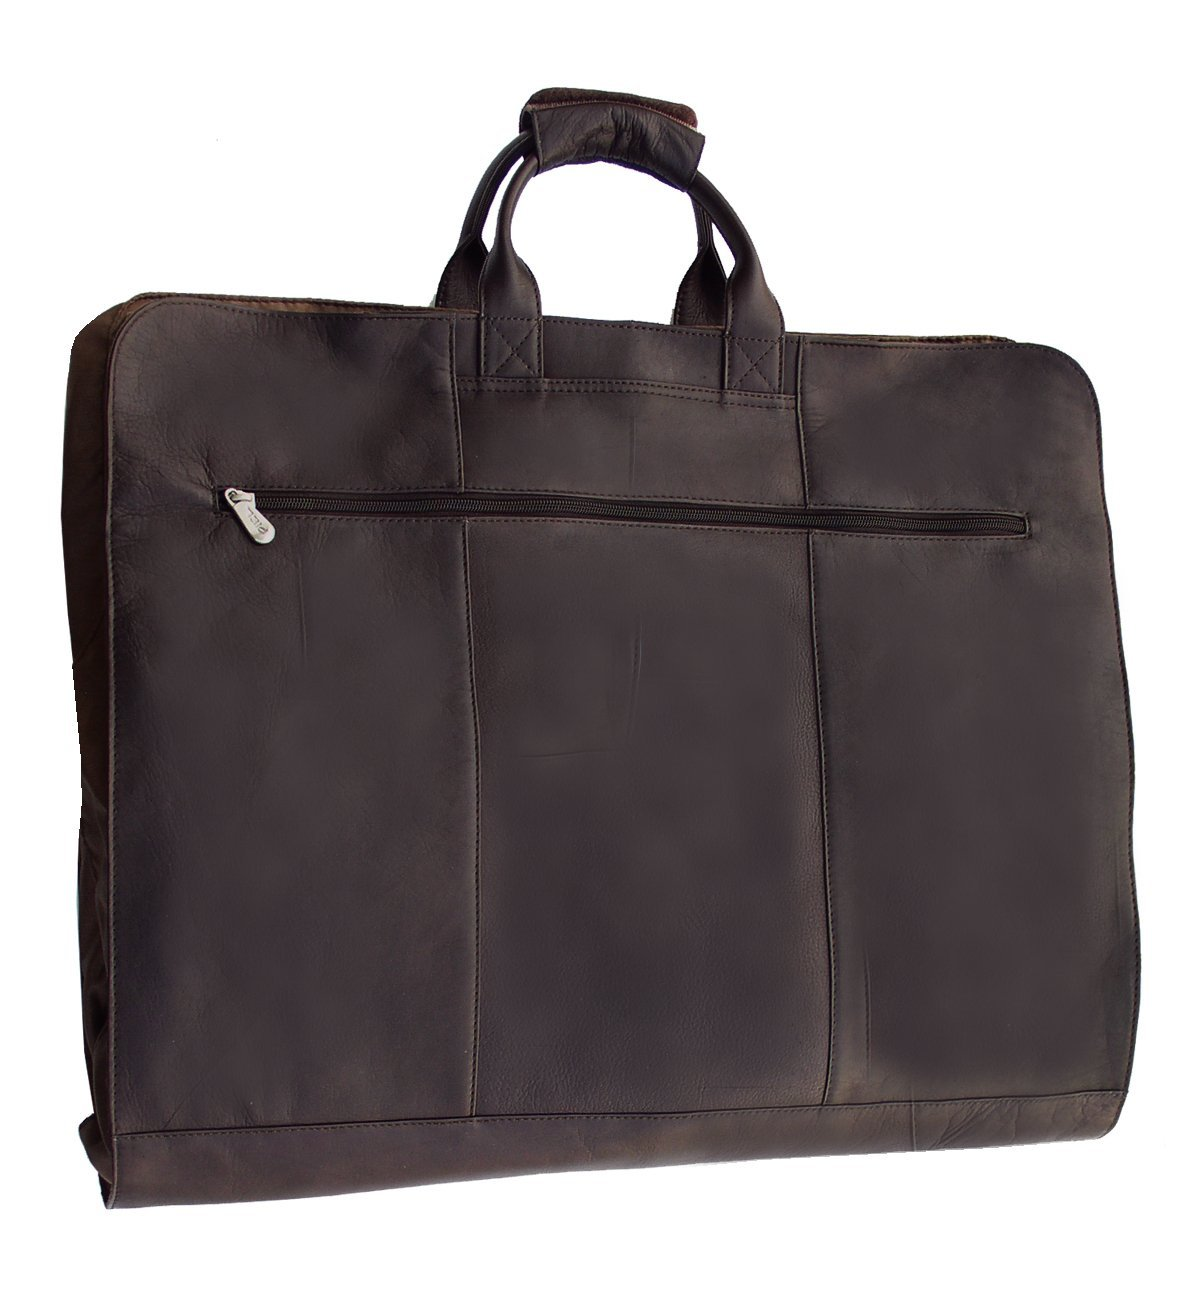 Piel Leather Traveler Garment Cover in Chocolate by Piel Leather